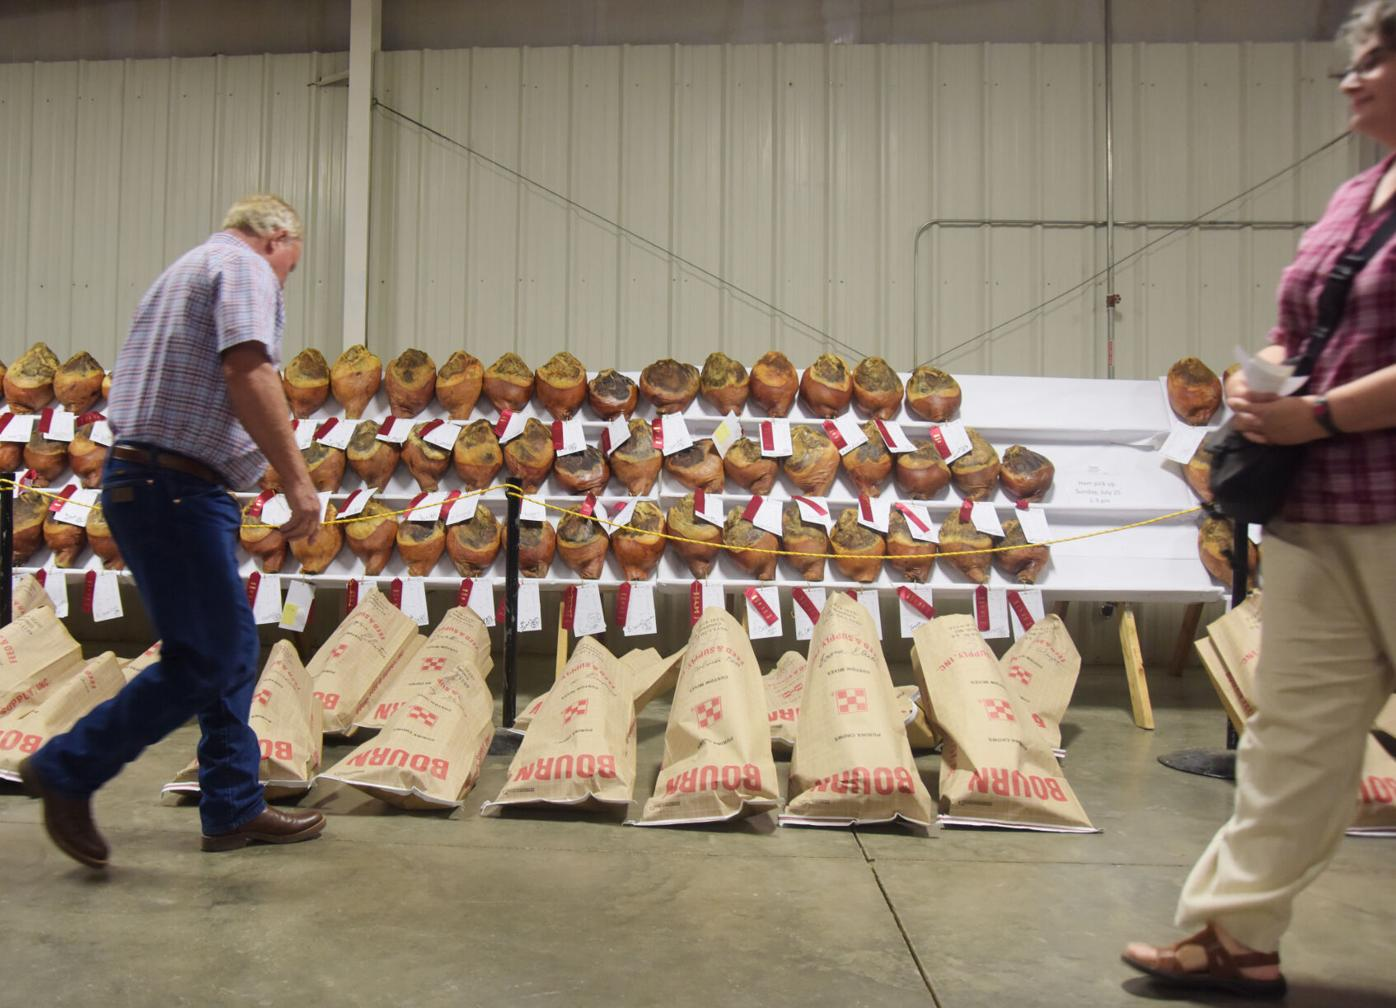 Paul Little looks at the bagged up hams